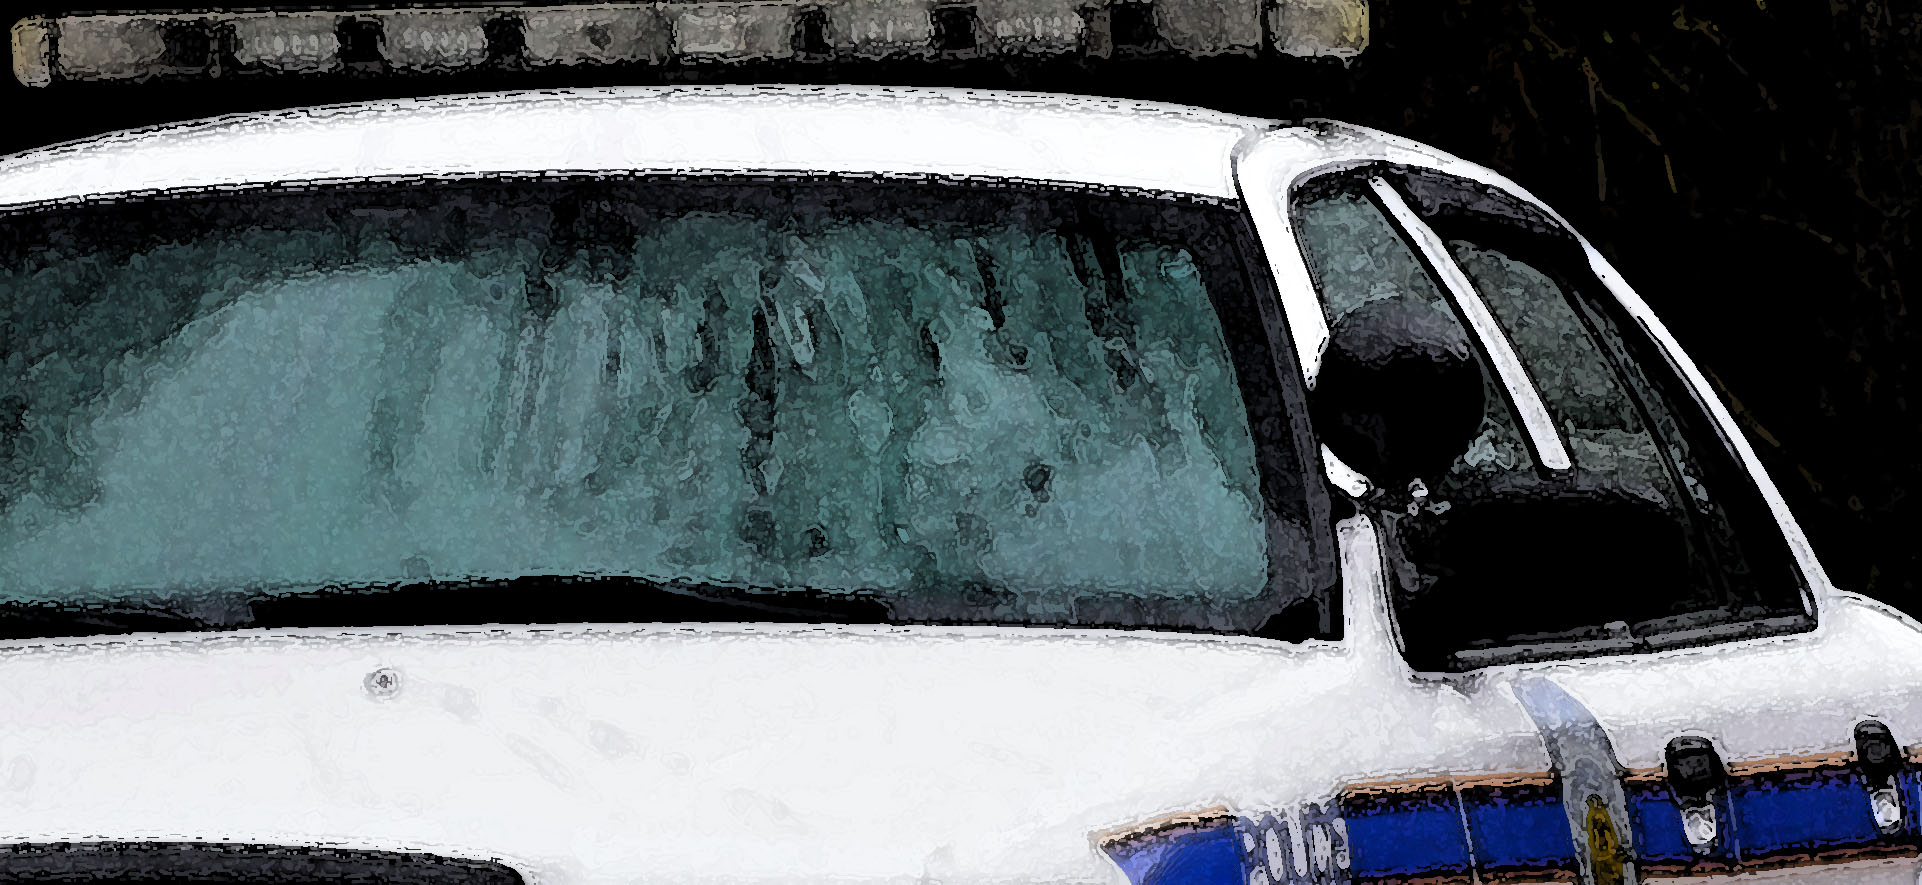 watercolor police vehicle detail - all rights reserved Ernest J. Bordini, Ph.D.